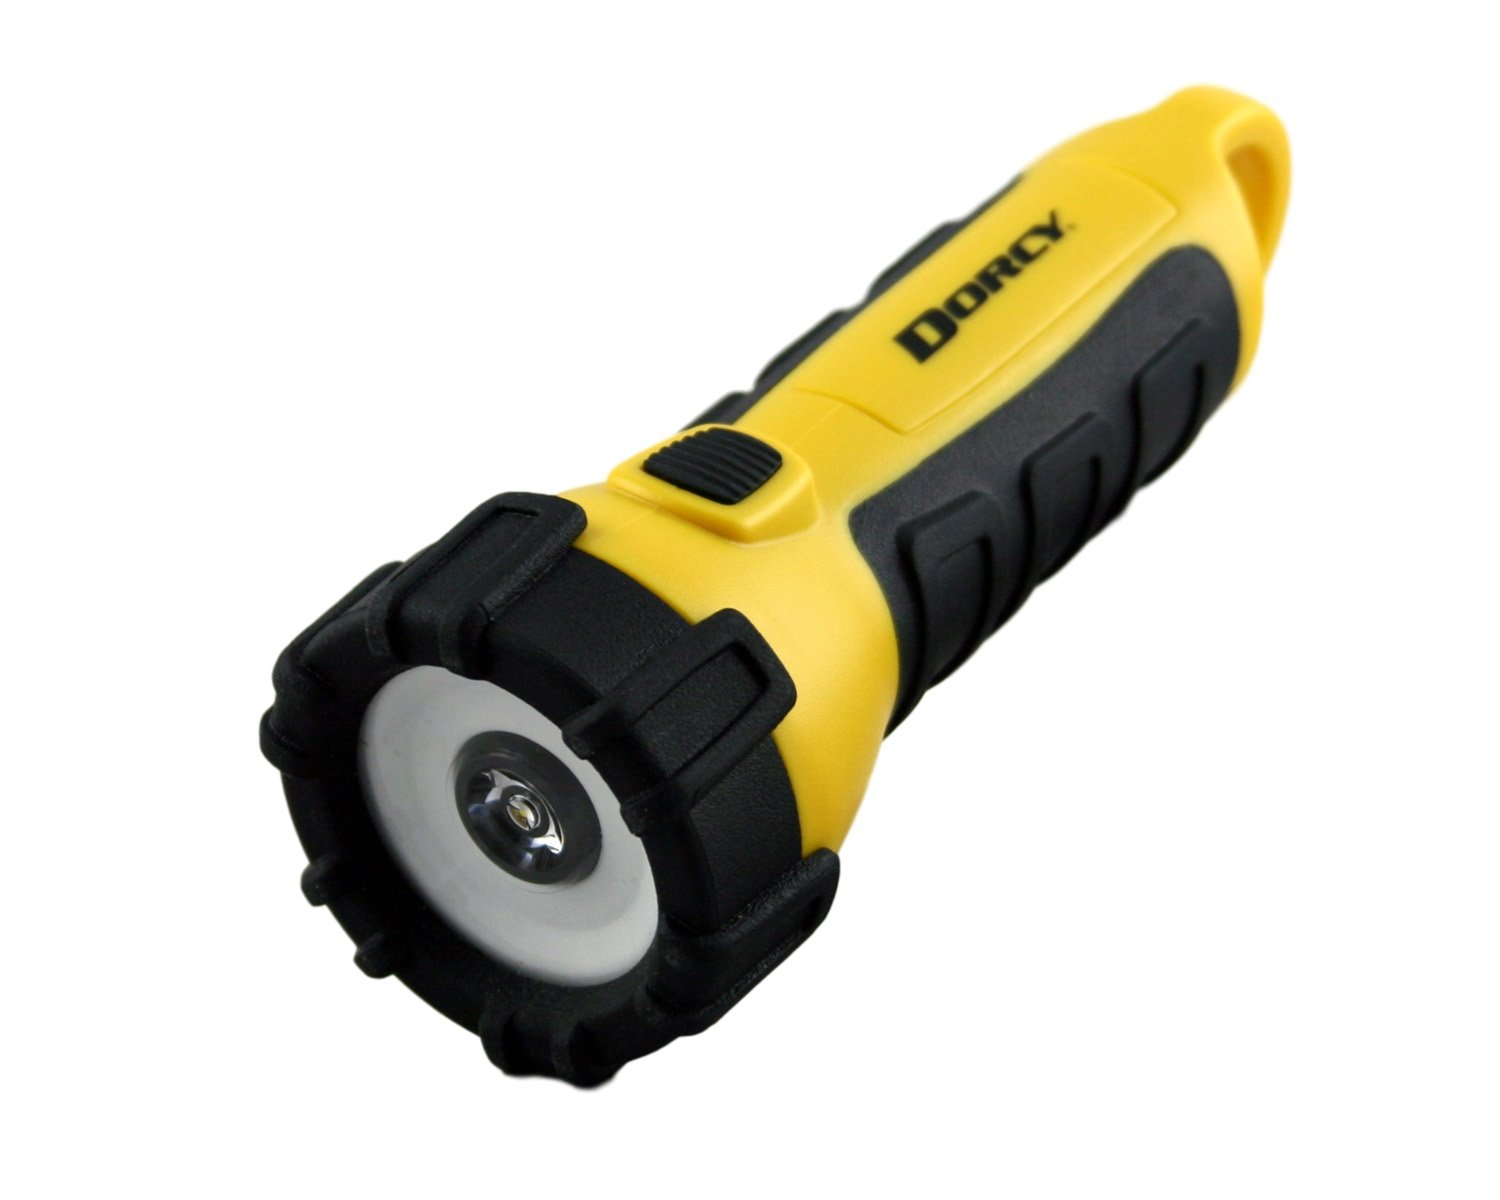 Dorcy 41-2521 3AA Portable Waterproof/Floating Flashlight, 150-Lumens